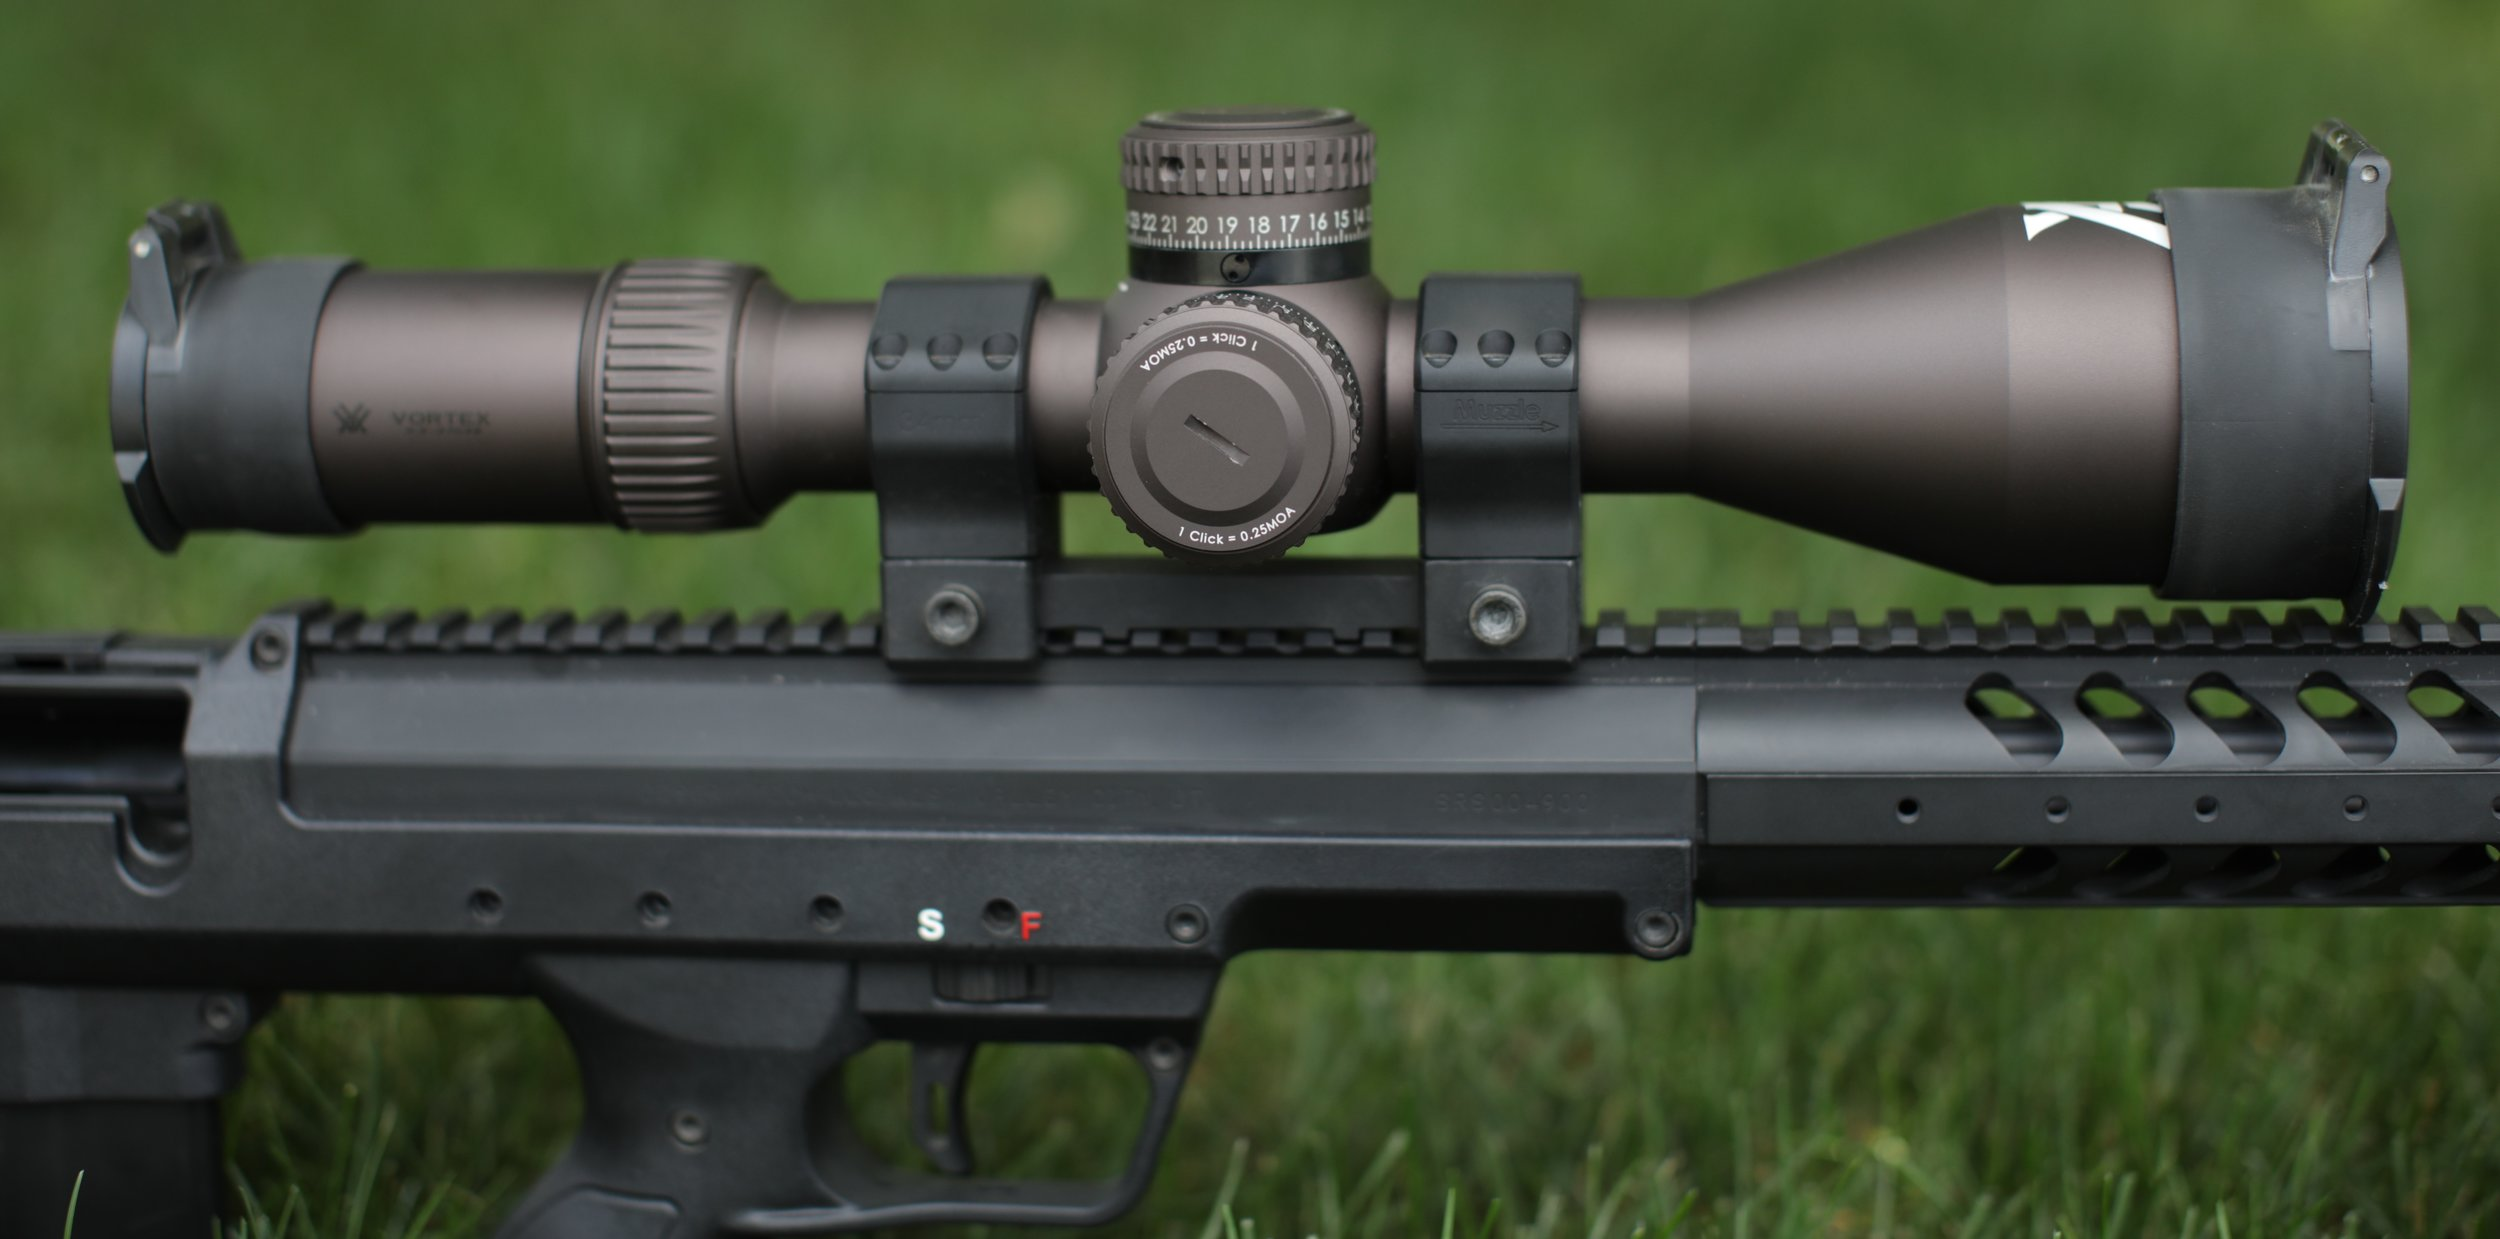 The Desert Tech Scope mount offers a 20 MOA (or 30 or 40) pitch and includes a bubble level in the rear ring. The Vortex Razor HD Gen 2 scope is flawless in clarity and function.